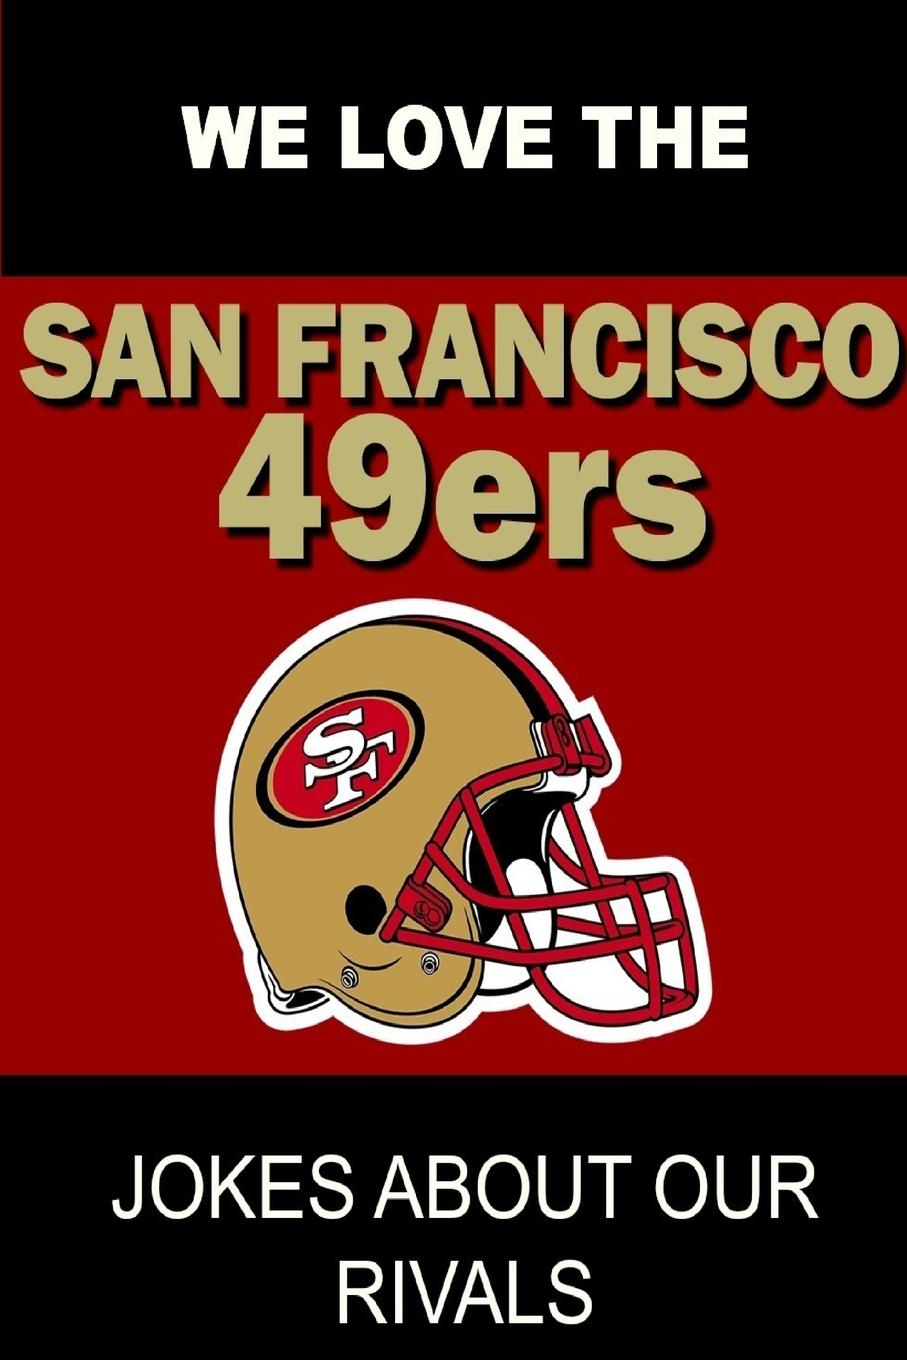 Dustin Wright We Love the San Francisco 49ers - Jokes About Our Rivals недорго, оригинальная цена